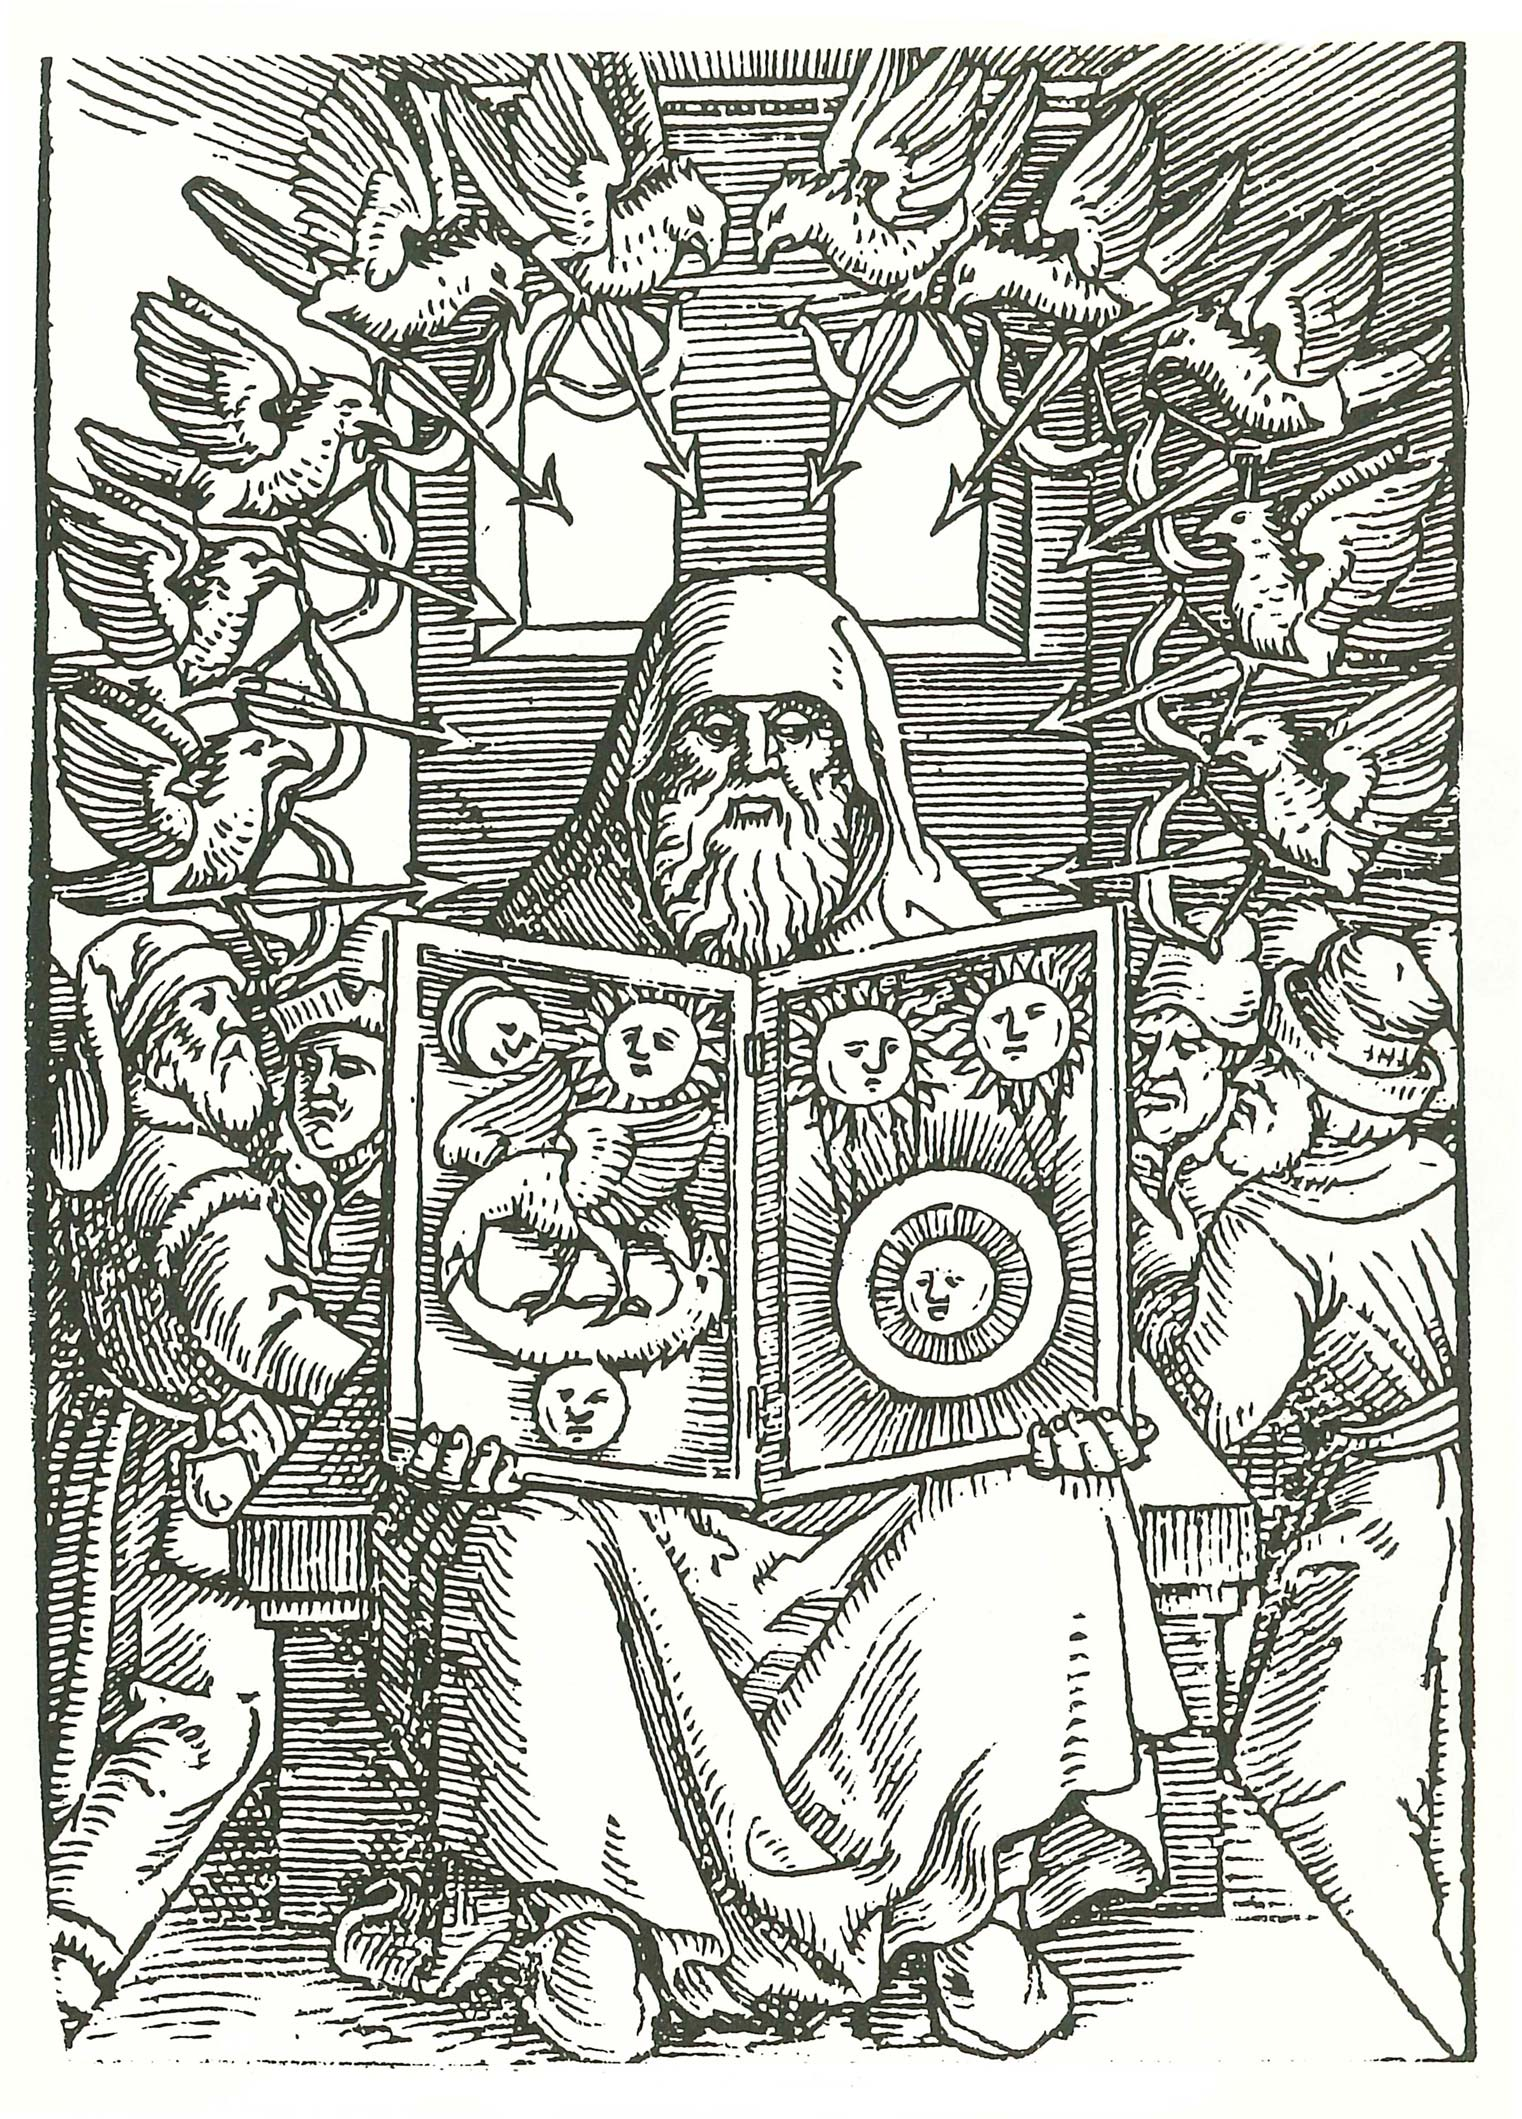 alchemy and knowledge notes Secrets, offering viewers not just a case study in obfuscation but also a document of the diverse aims and methods of alchemy as it was practiced in early modern europe.